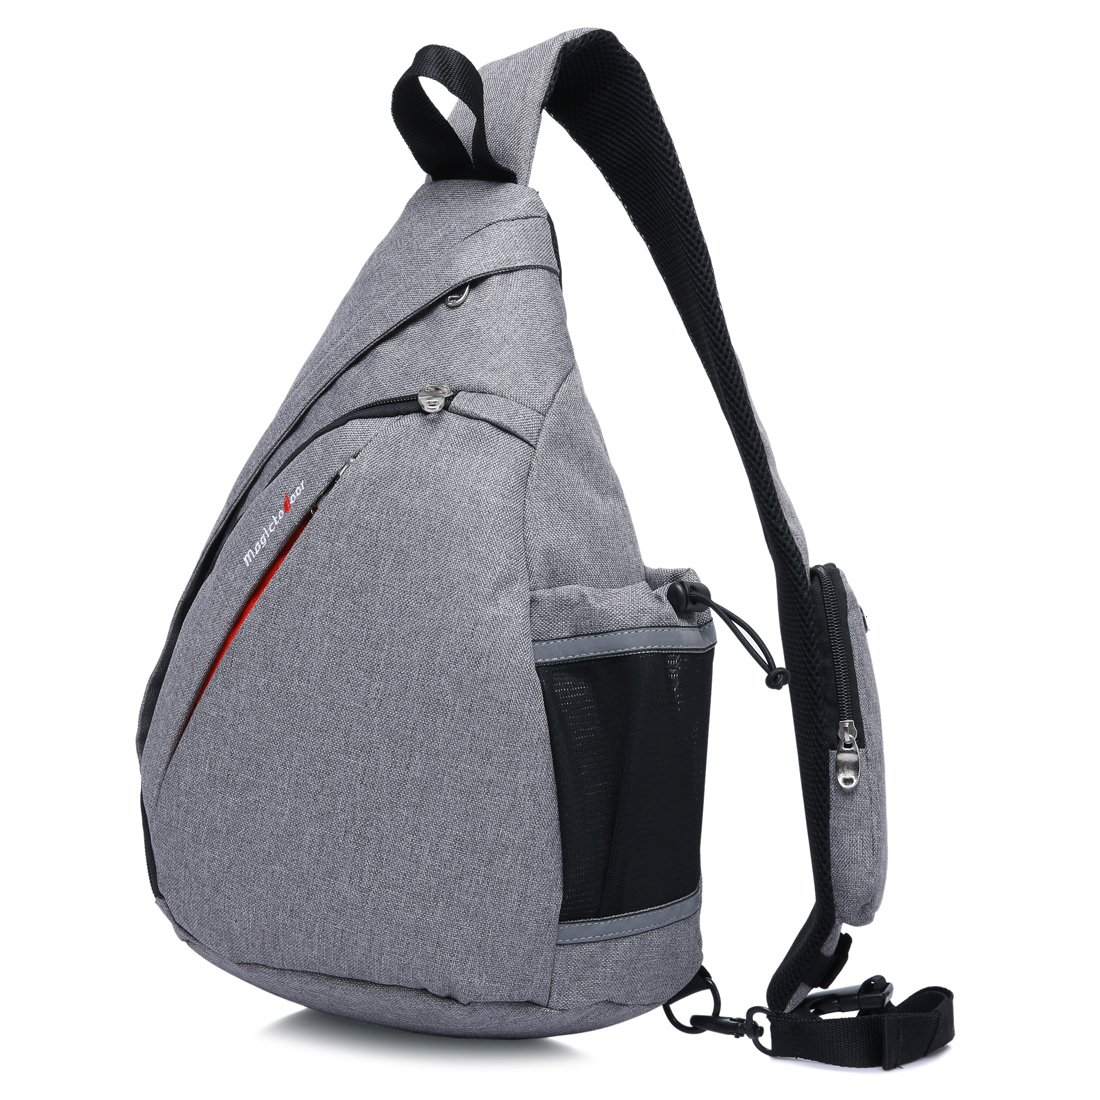 Magictodoor Sling Bag Travel Backpack Wear Over Shoulder or Crossbody Chest Bag Grey